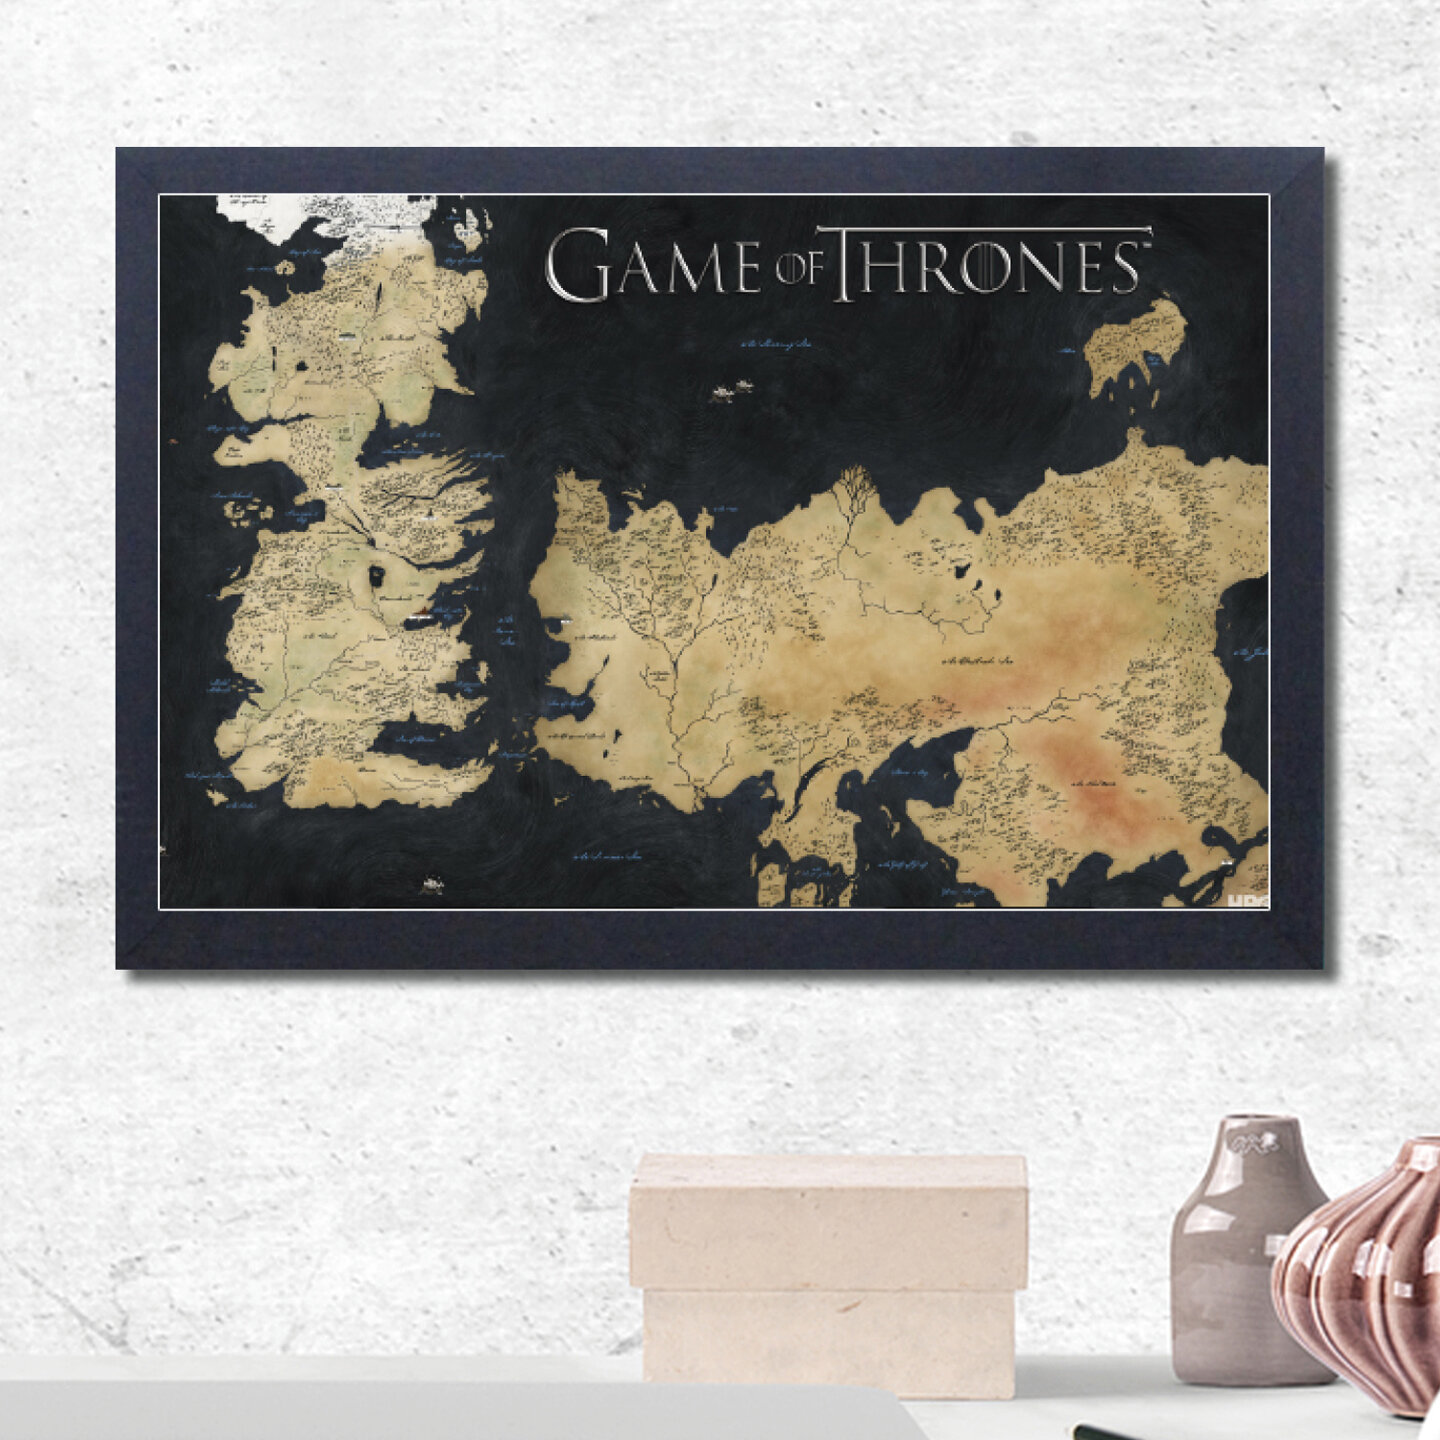 Game Of Thrones Map Essos on game of thrones yi ti, game of thrones wallpaper 1280x1024, game of thrones poster, official map of essos, game of thrones sothoryos, game of thrones maps pdf, hd map of westeros essos, game of thrones family tree house, game of thrones king's landing minecraft, game of thrones all books, game of thrones 4d puzzle, game of thrones maps and families, game of thrones city braavos, game of thrones banners, game of thrones qarth, game of thrones house tyrell, game of thrones diagram, game of thrones maps hbo,